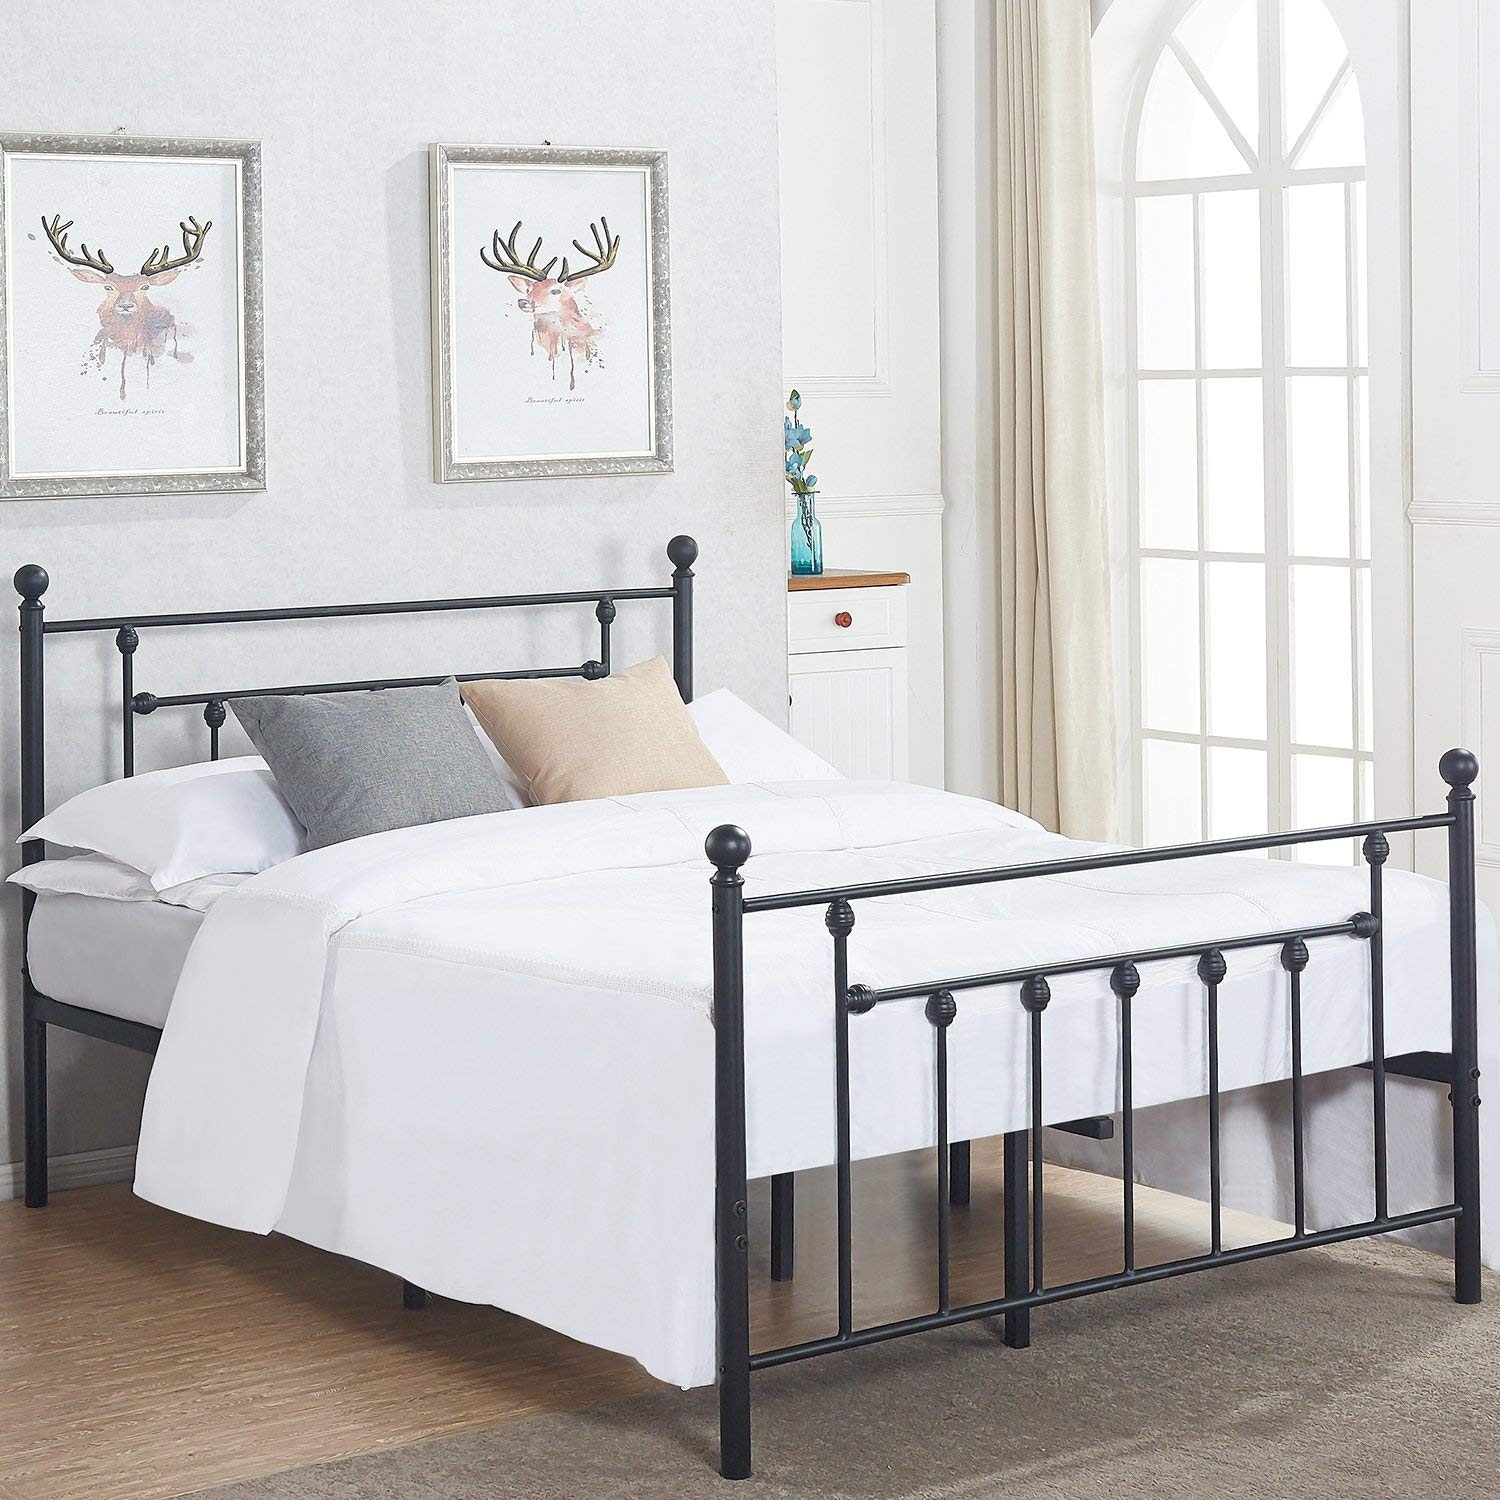 Shop Vecelo Metal Beds Victorian Metal Platform Beds Bed Frames With